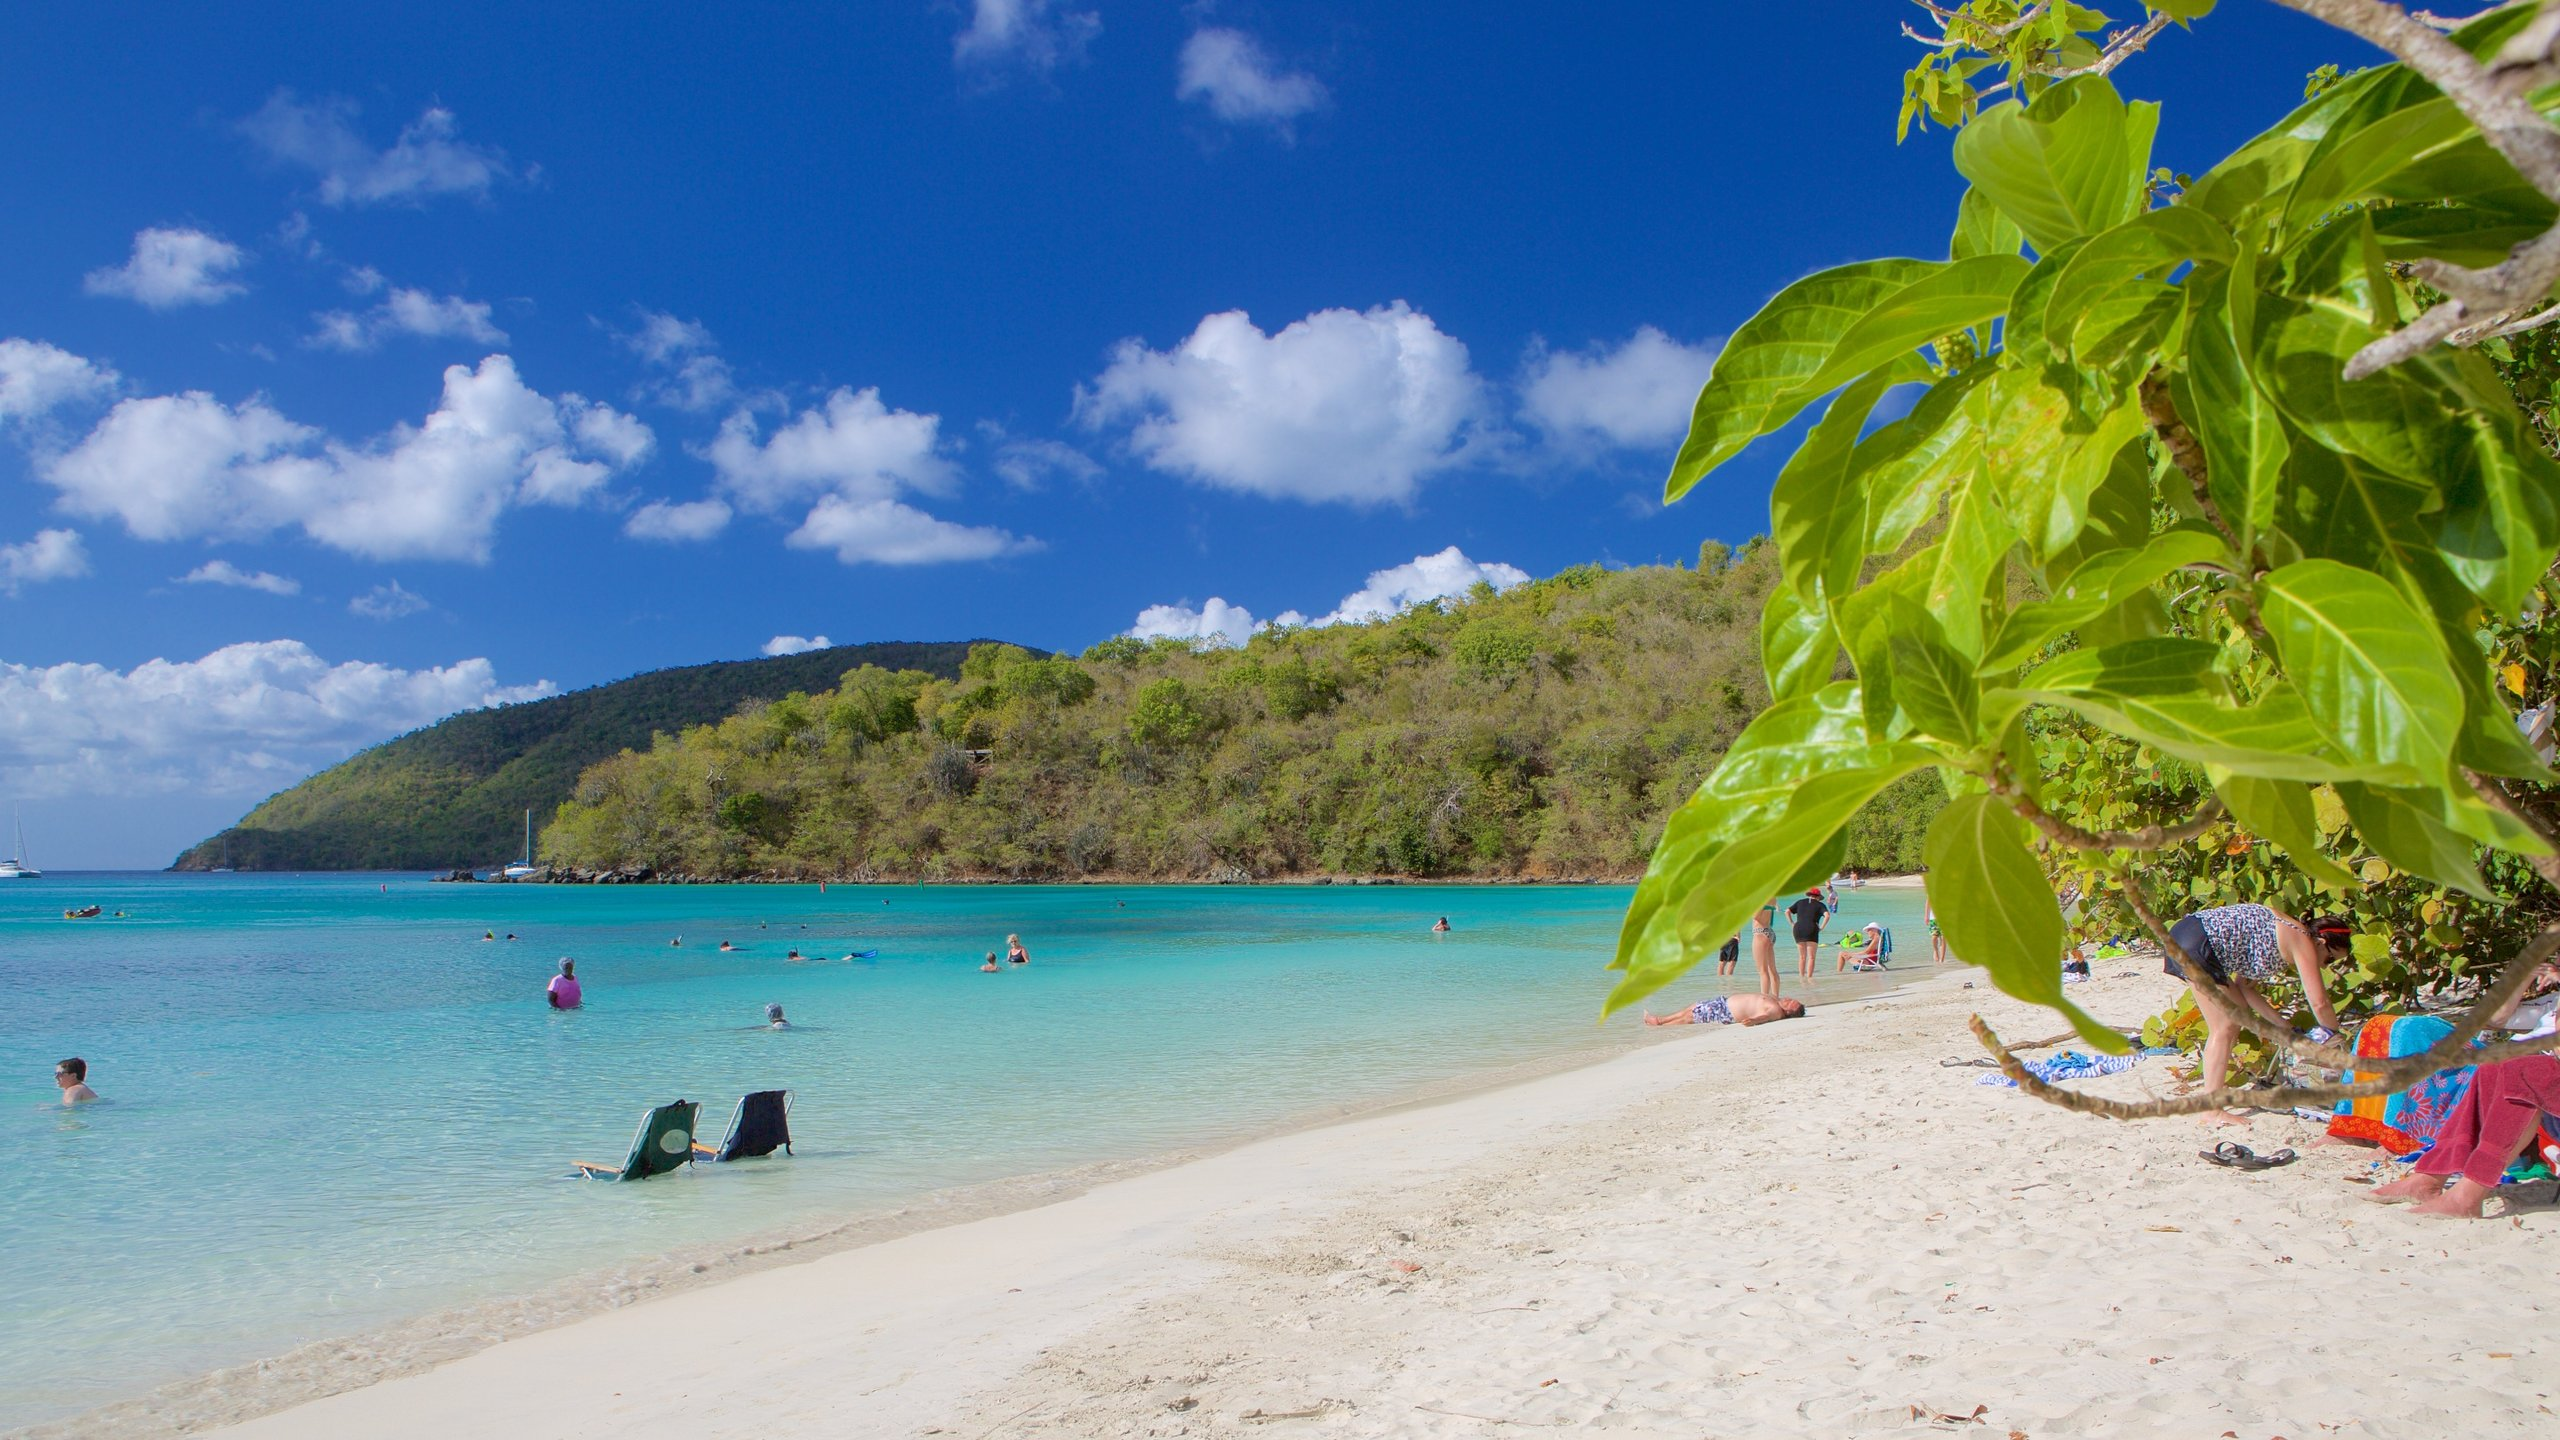 Not just an idyllic spot for swimmers and sunbathers, this picturesque bay is also popular with a raft of colorful marine creatures.